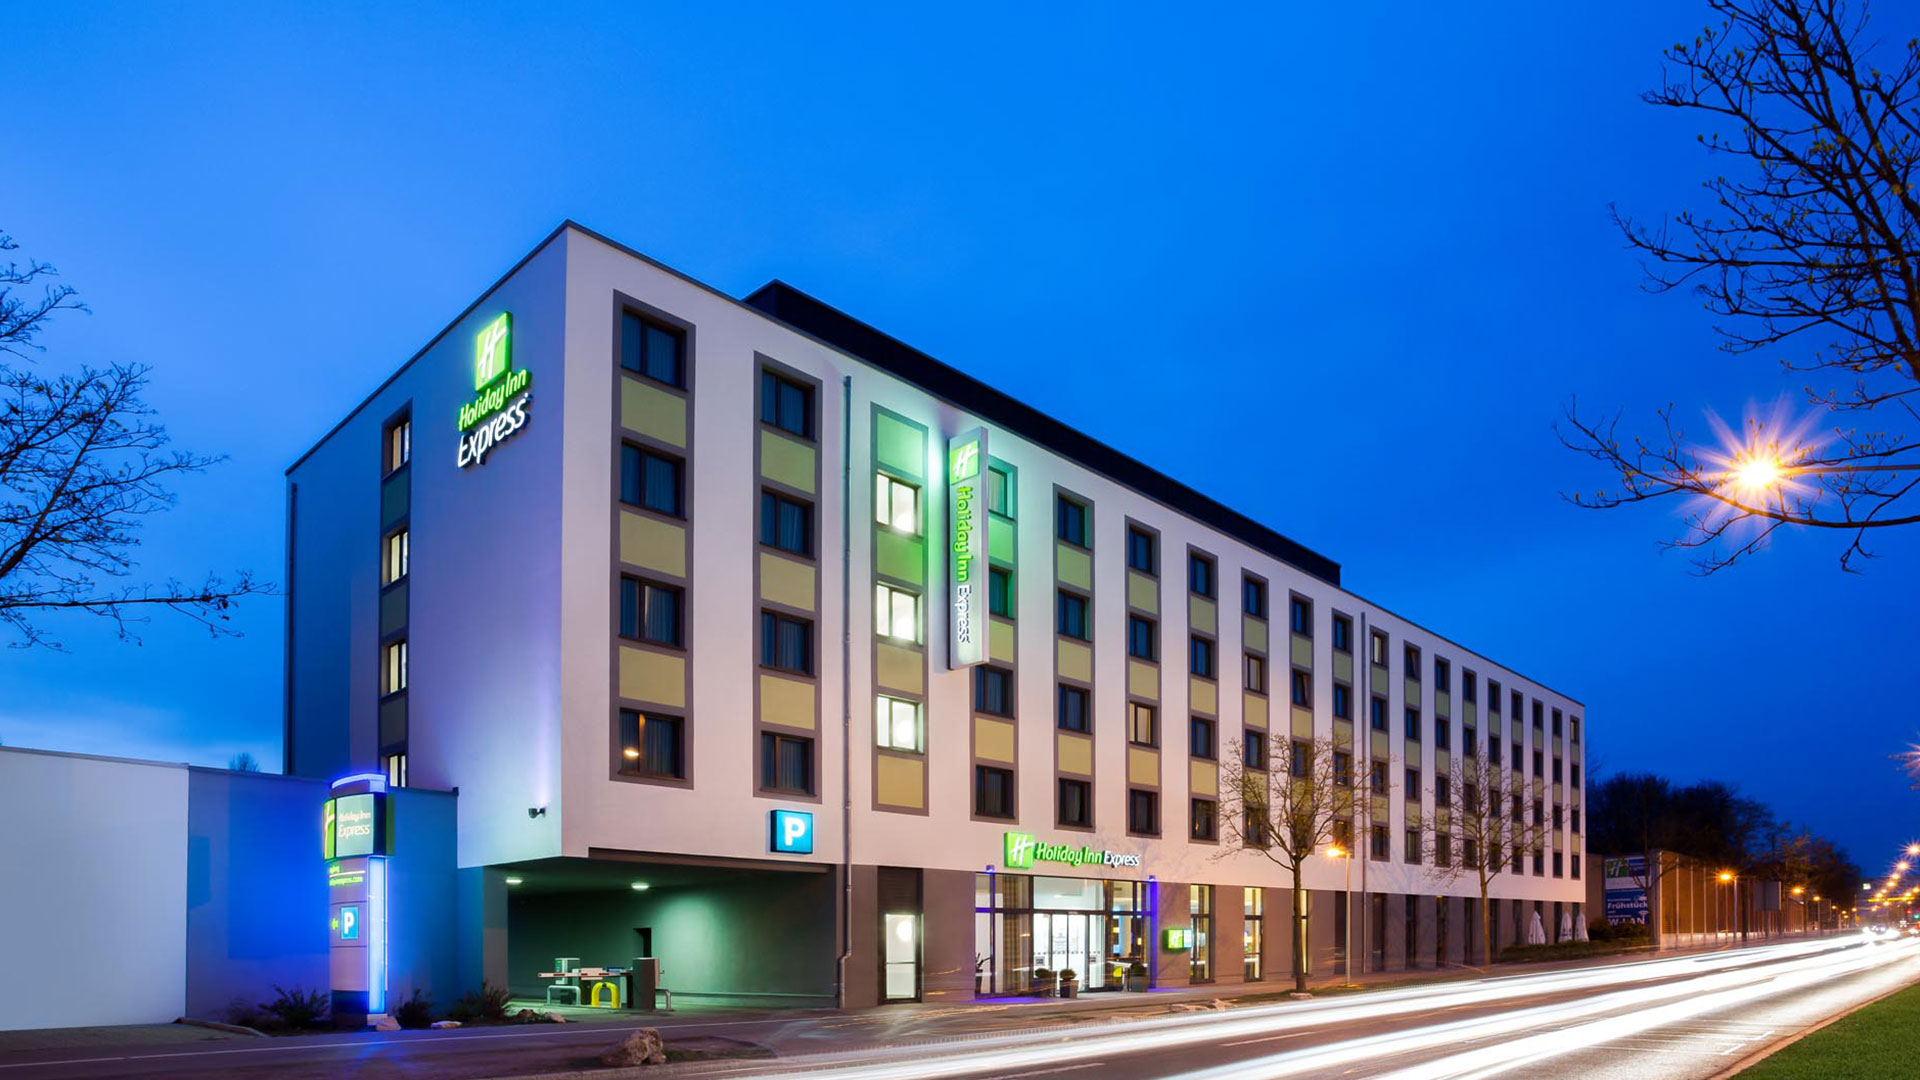 Photo of the exterior view - 02 - Holiday Inn Express Augsburg